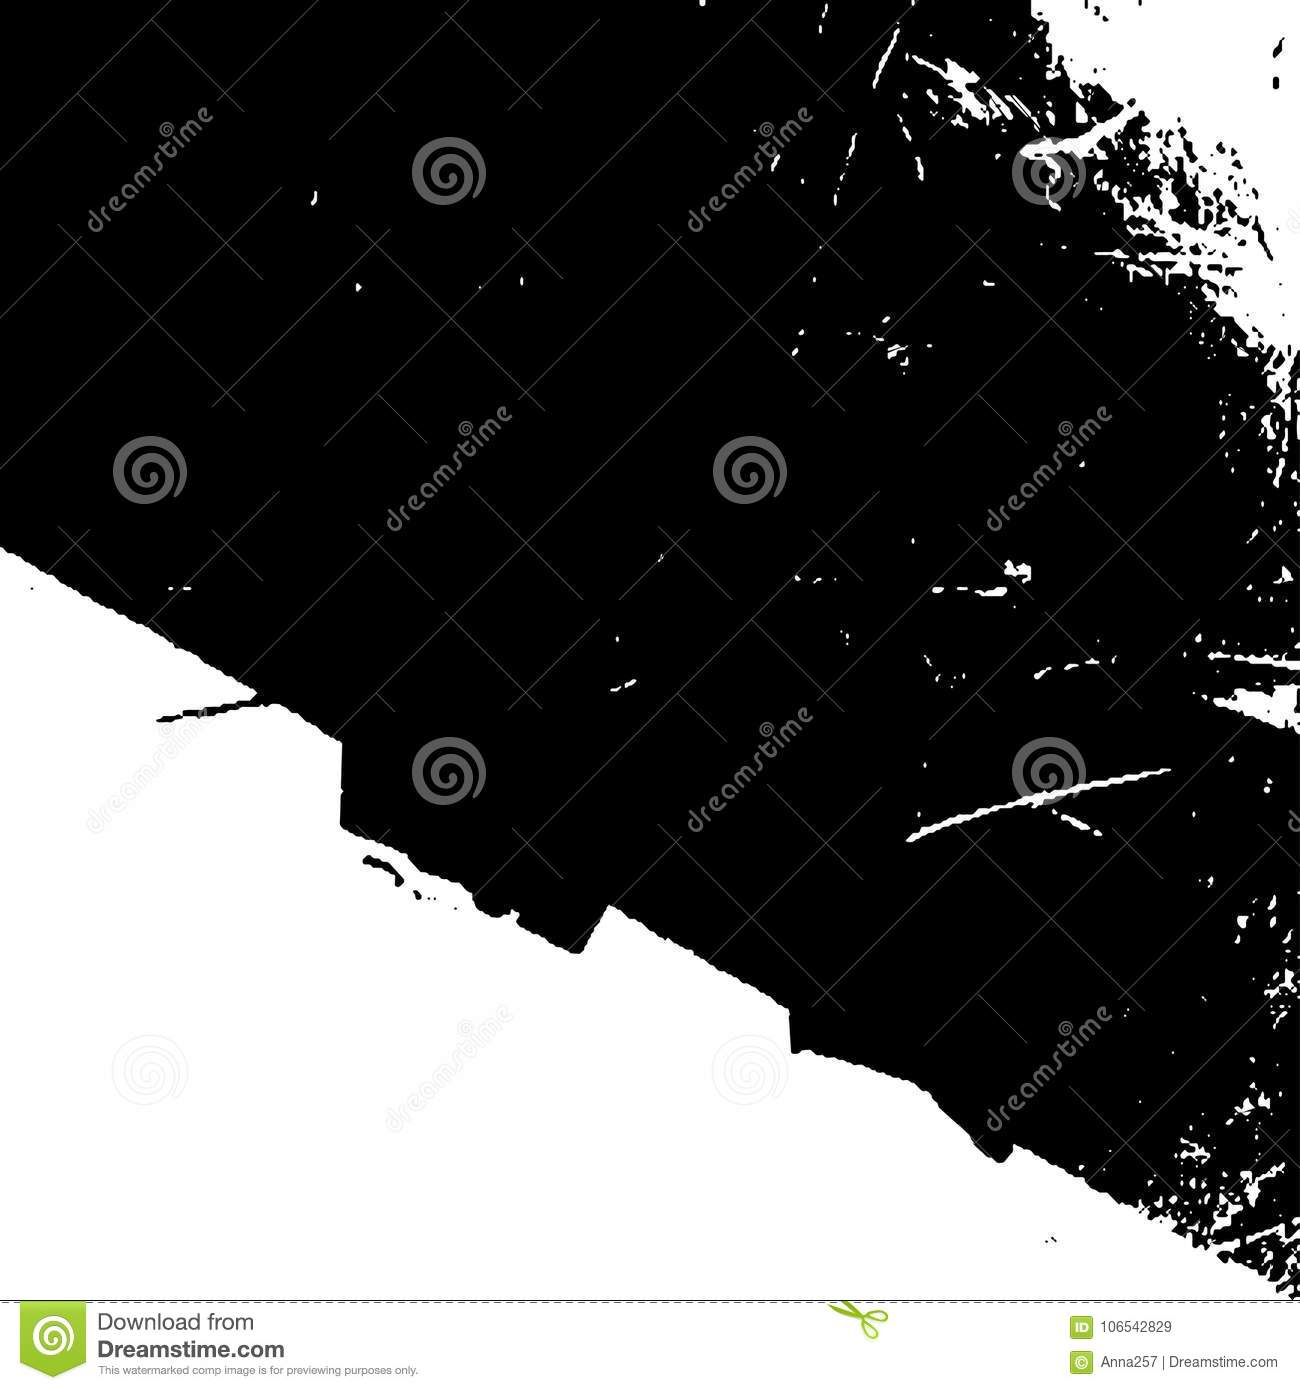 Grunge black textures on white background template for business download grunge black textures on white background template for business card banner poster colourmoves